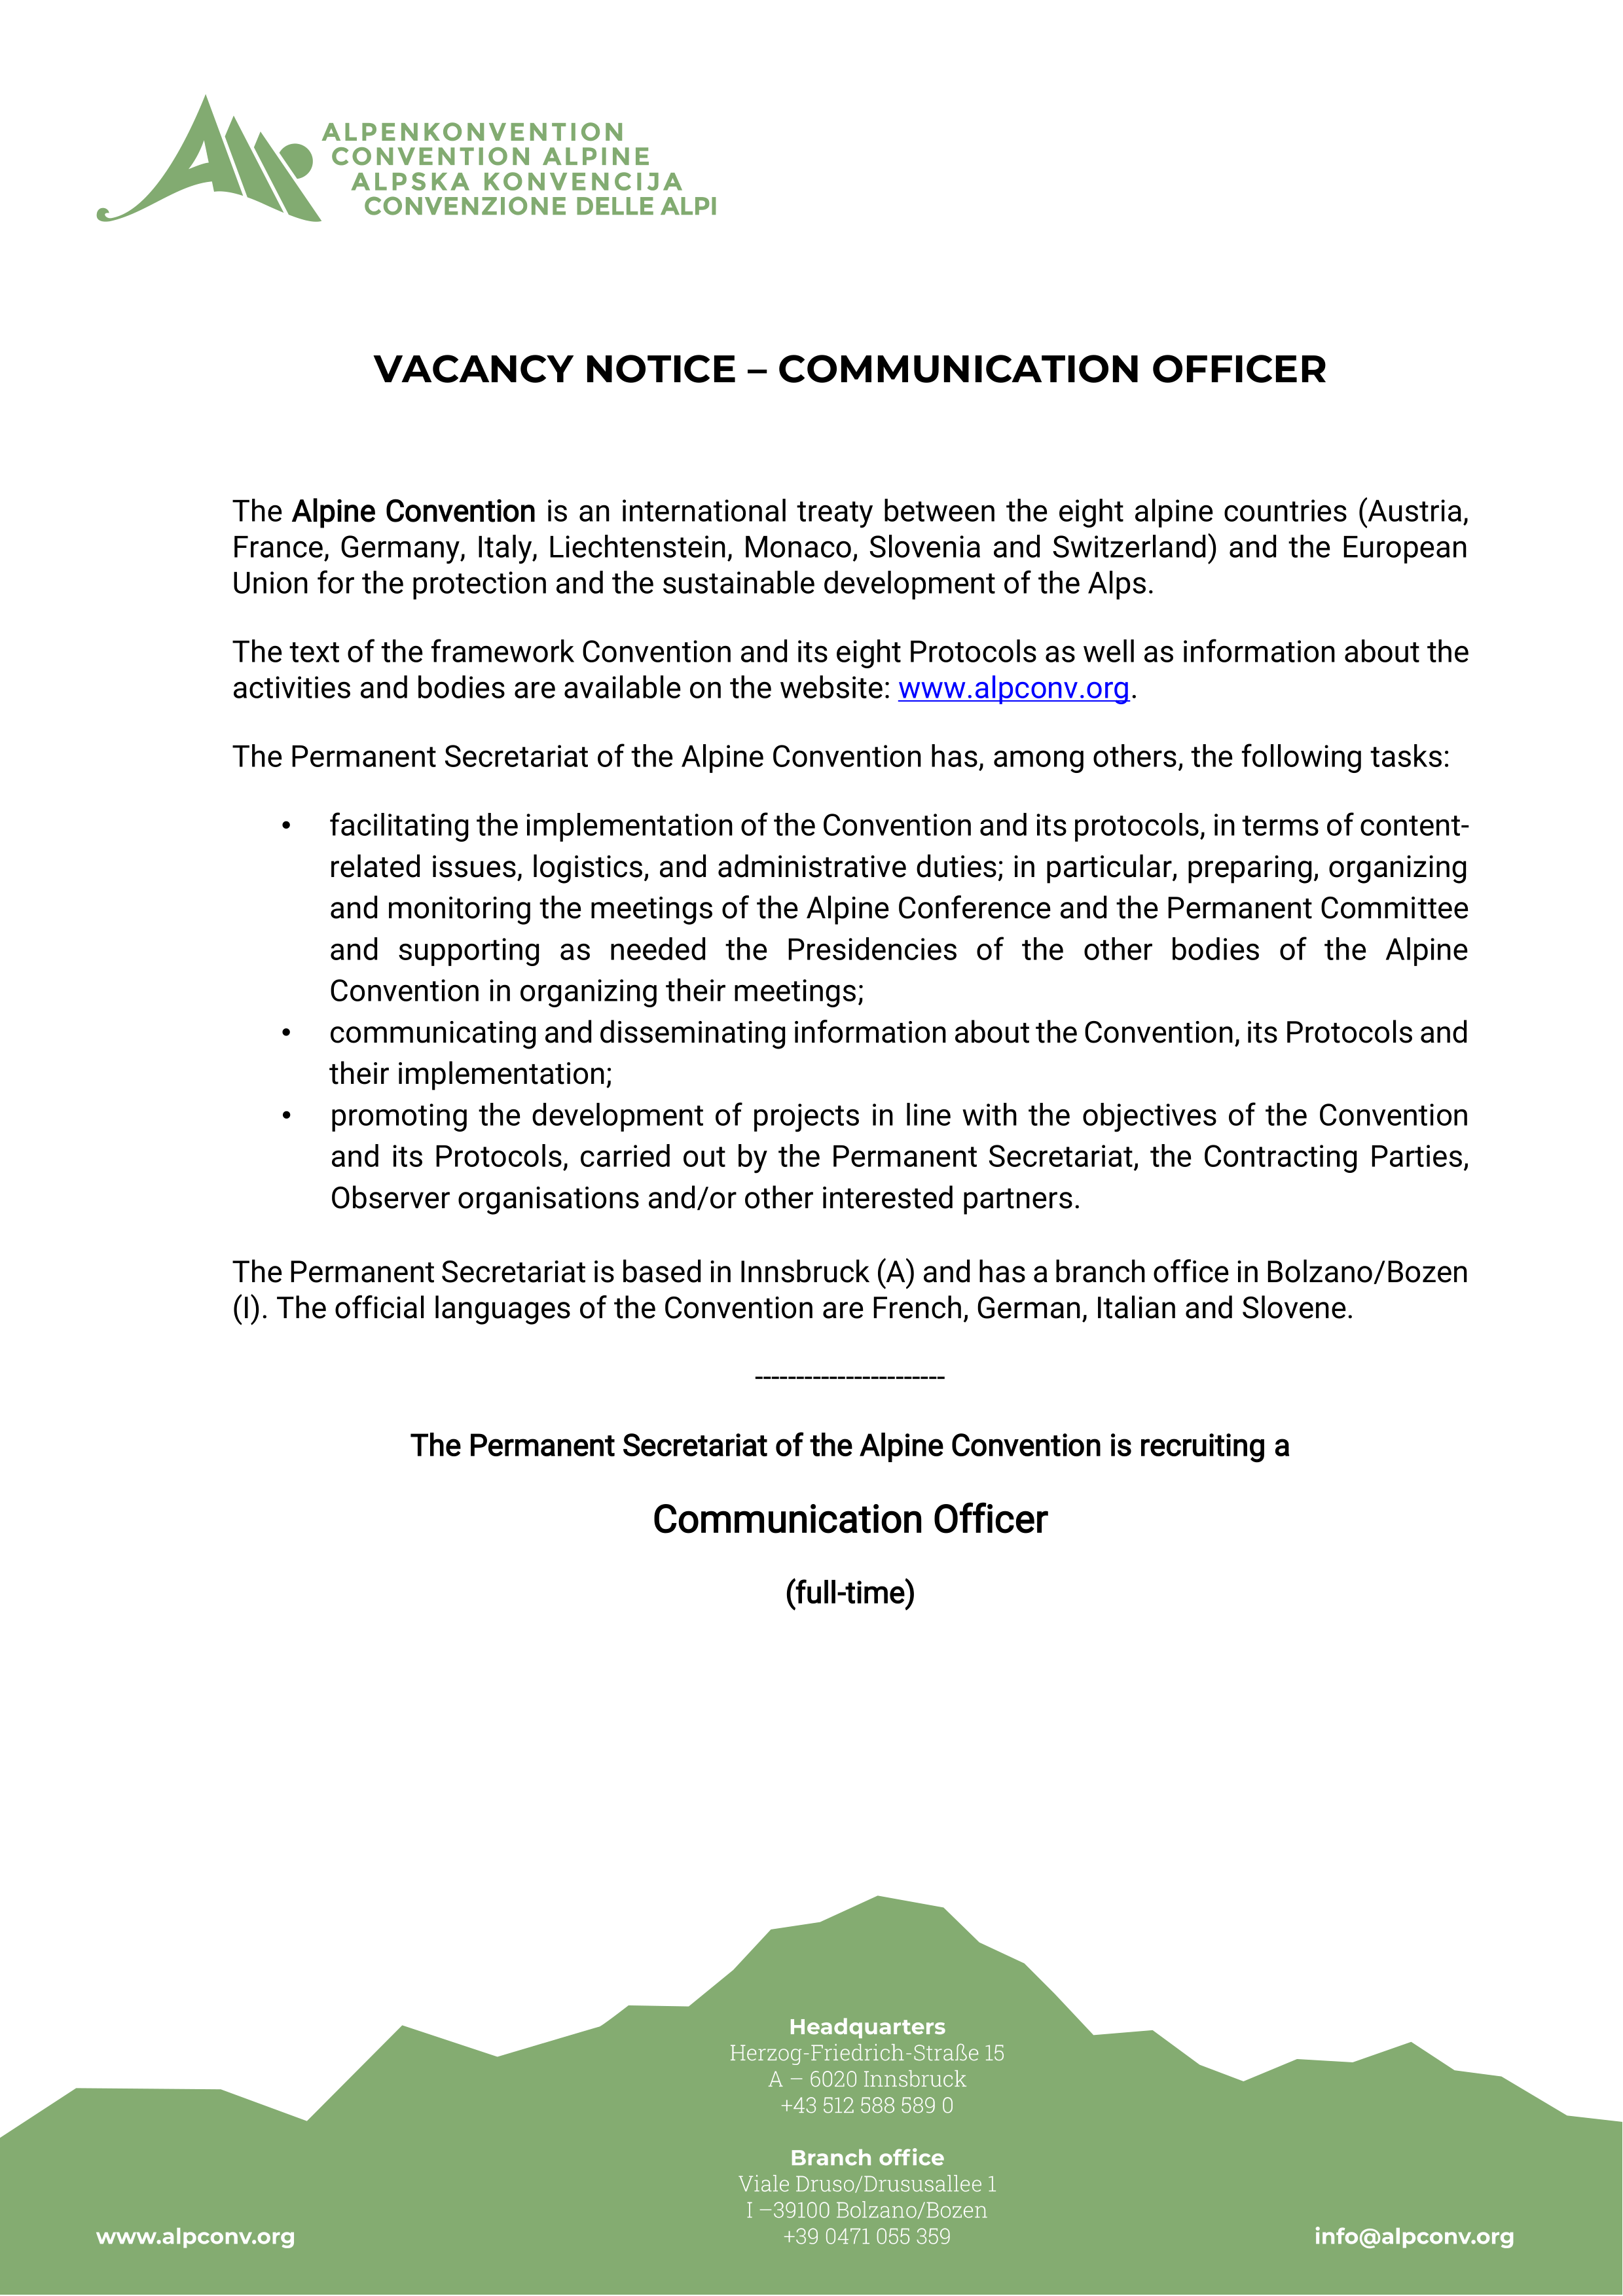 COMMUNICATION OFFICER